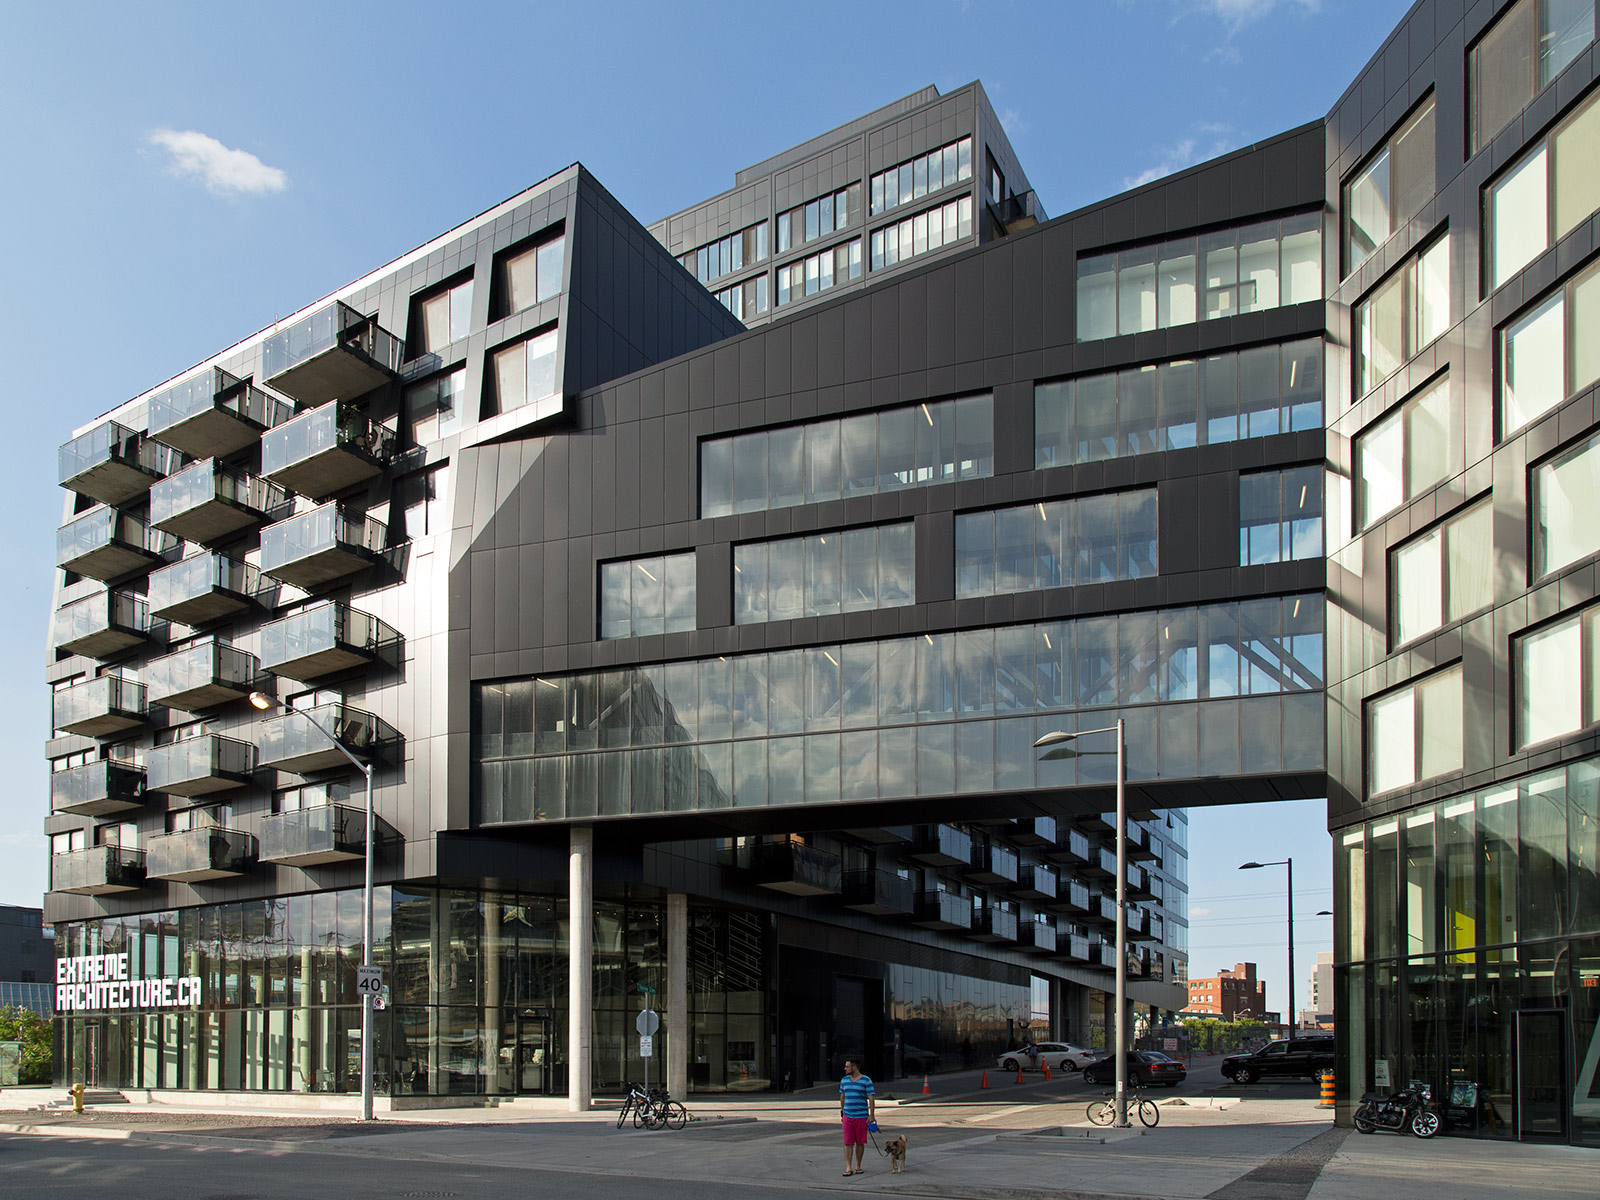 20140628. River City Phase 1 - the condominiums clad in black